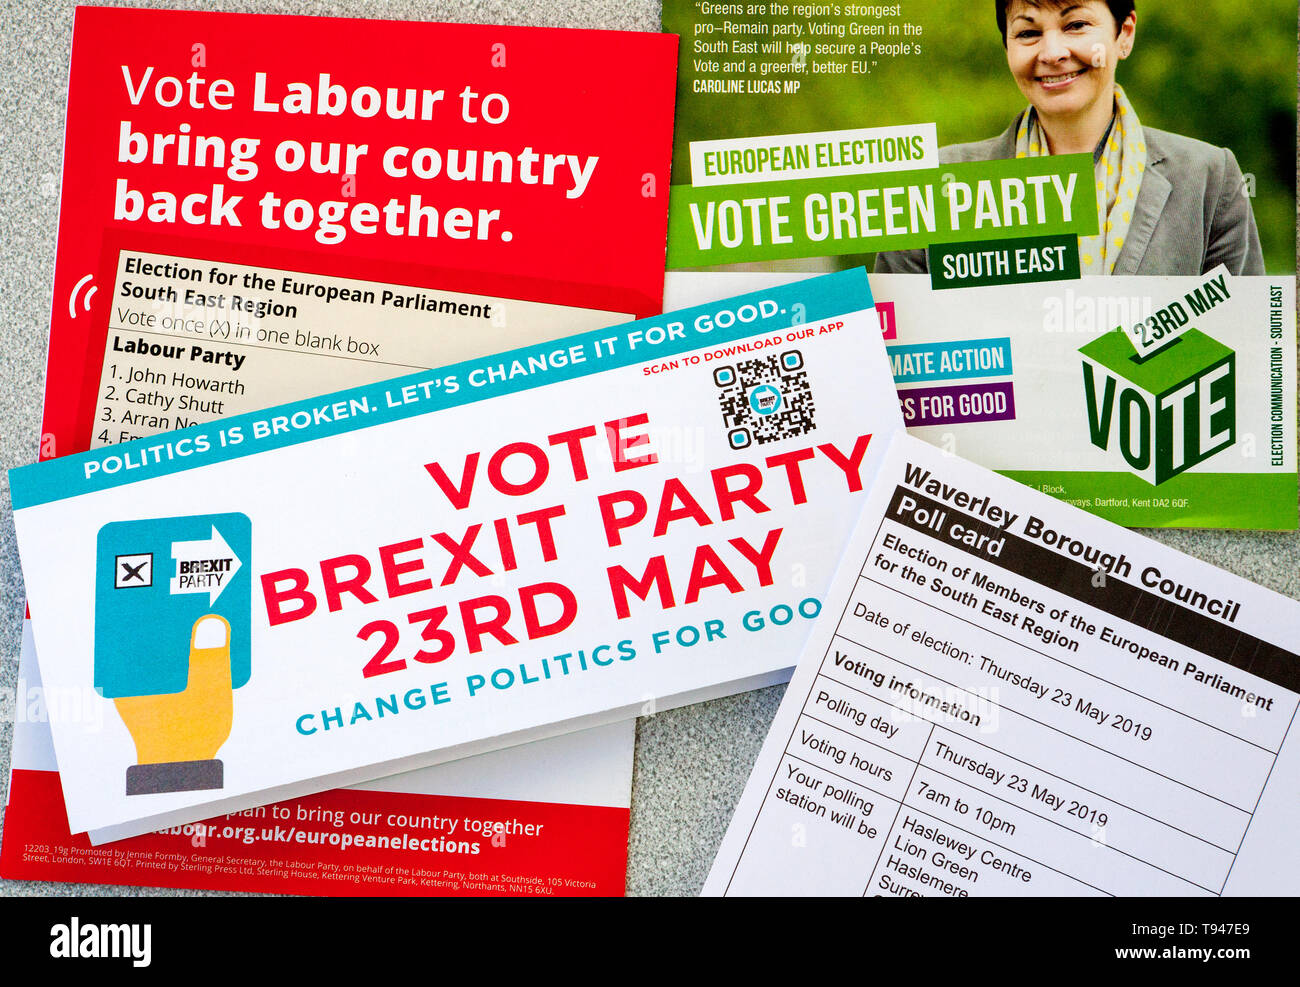 European Elections May 23rd 2019 leaflets and voting card UK - Stock Image